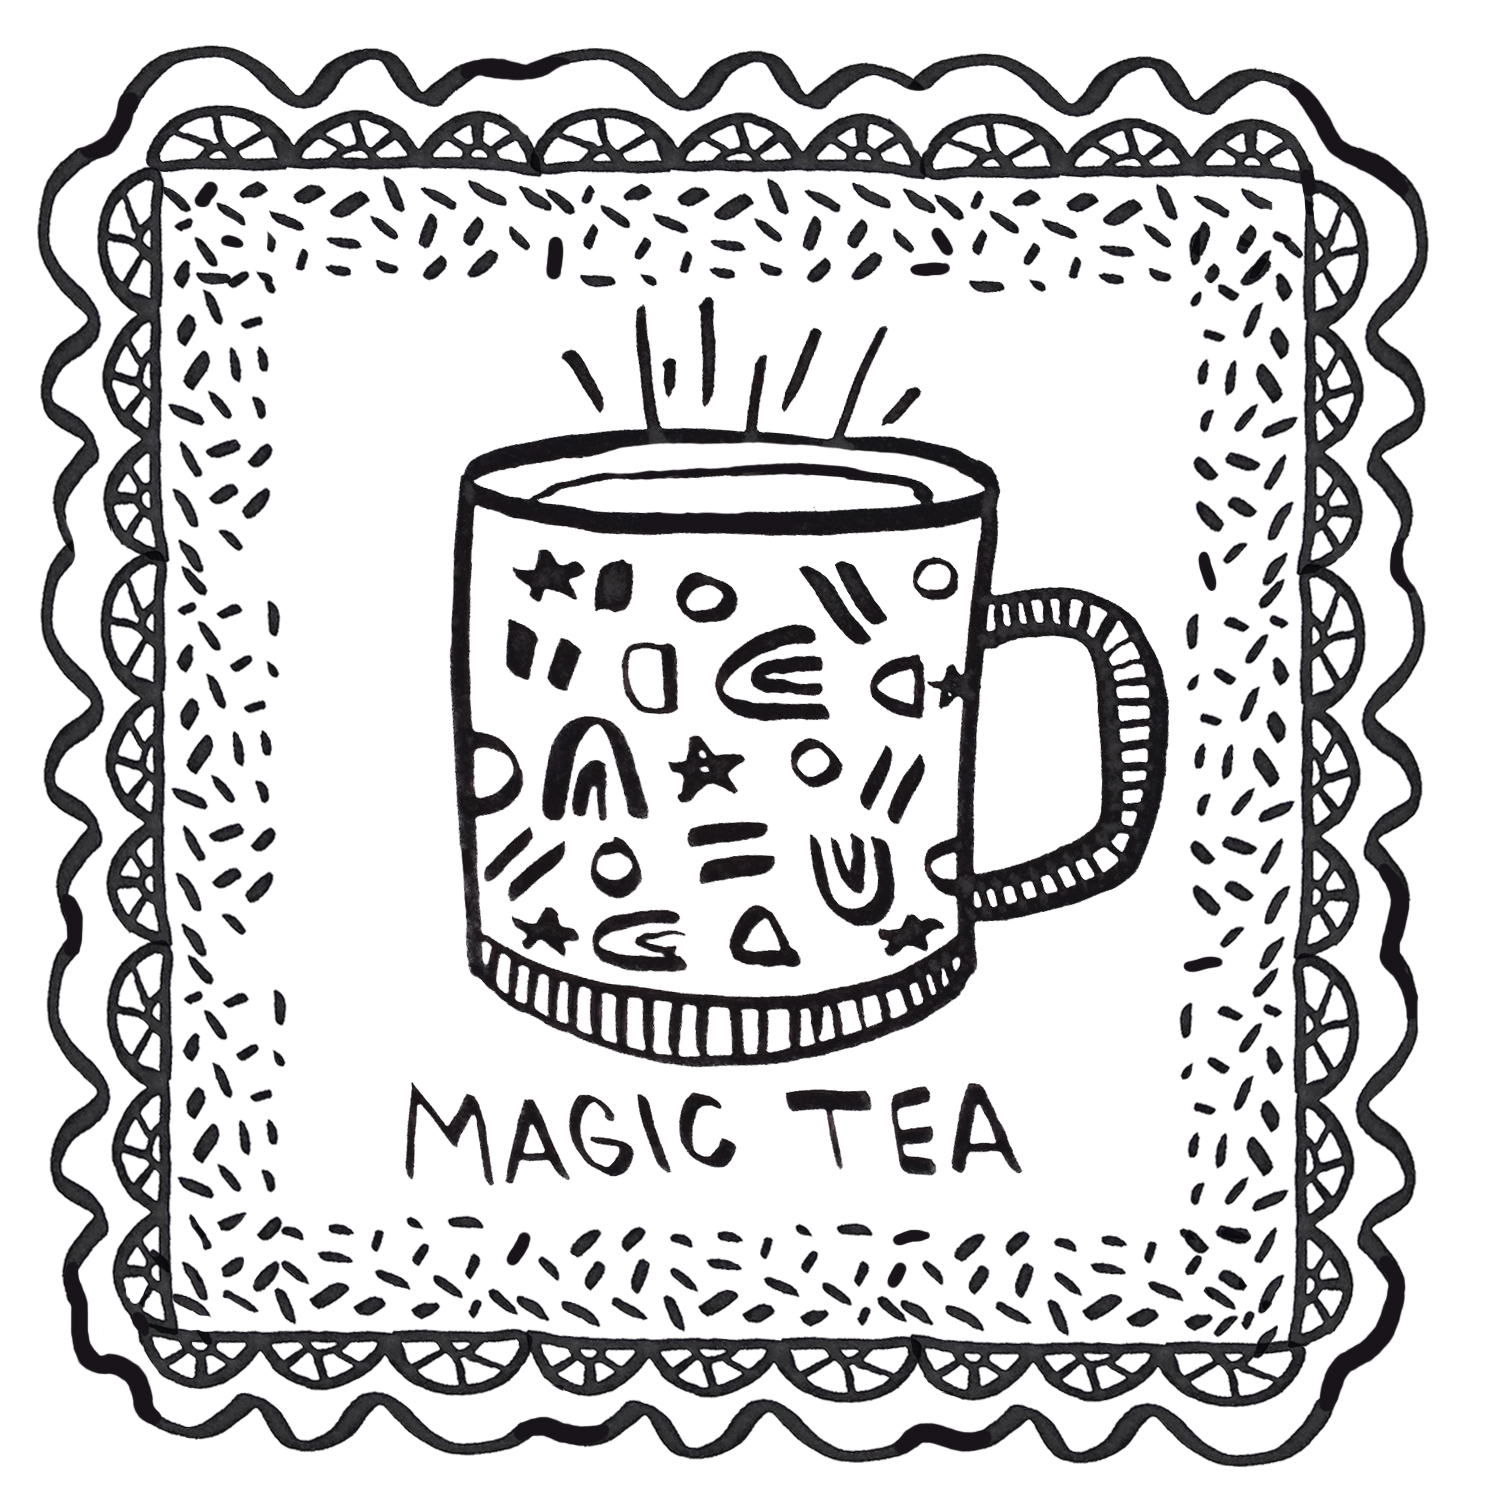 MAGIC TEA | wemadeithome.com 2 Tablespoon lemon juice, 1 teaspoon grated ginger, half a teaspoon tumeric, 1 tablespoon honey. Mix together in your favorite mug, add boiling water, stir and enjoy.